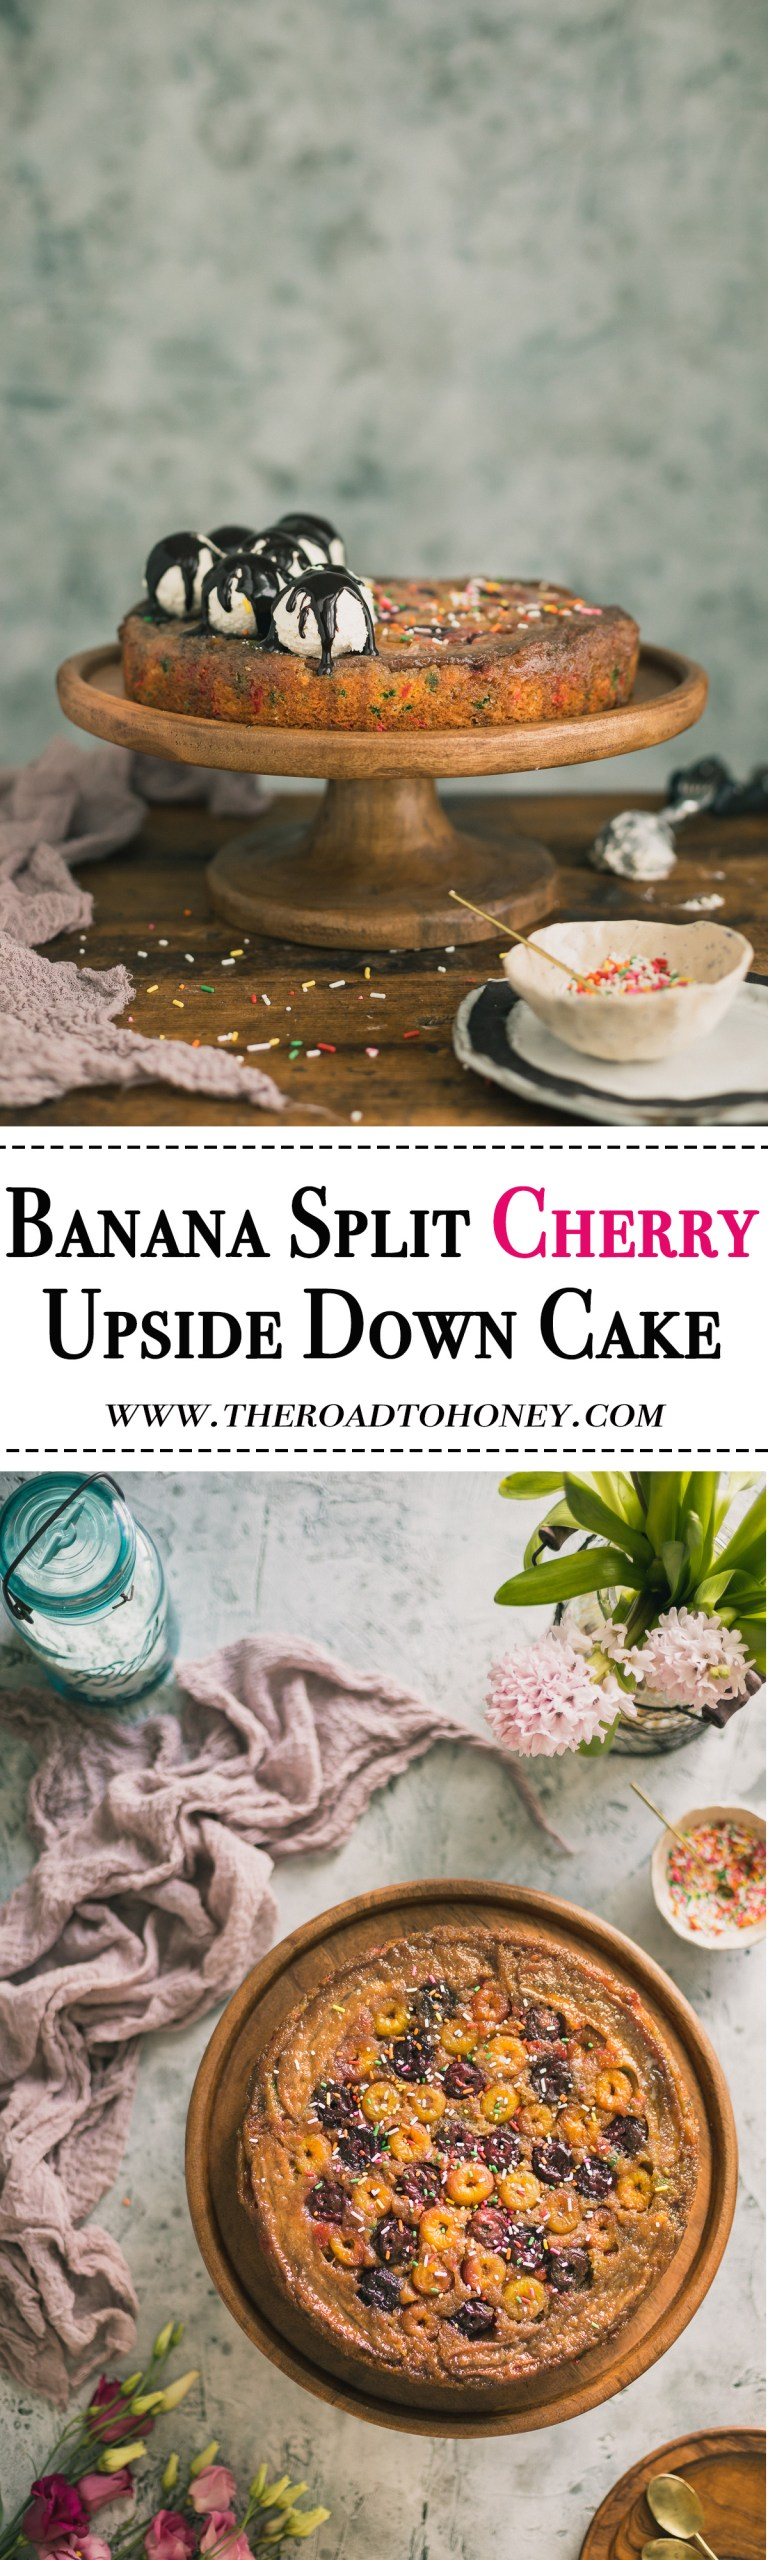 This Banana Split Cherry Upside Down Cake is an incredibly moist funfetti cake topped with fresh cherries, creamy bananas & a thick layer of caramel. Click for RECIPE.